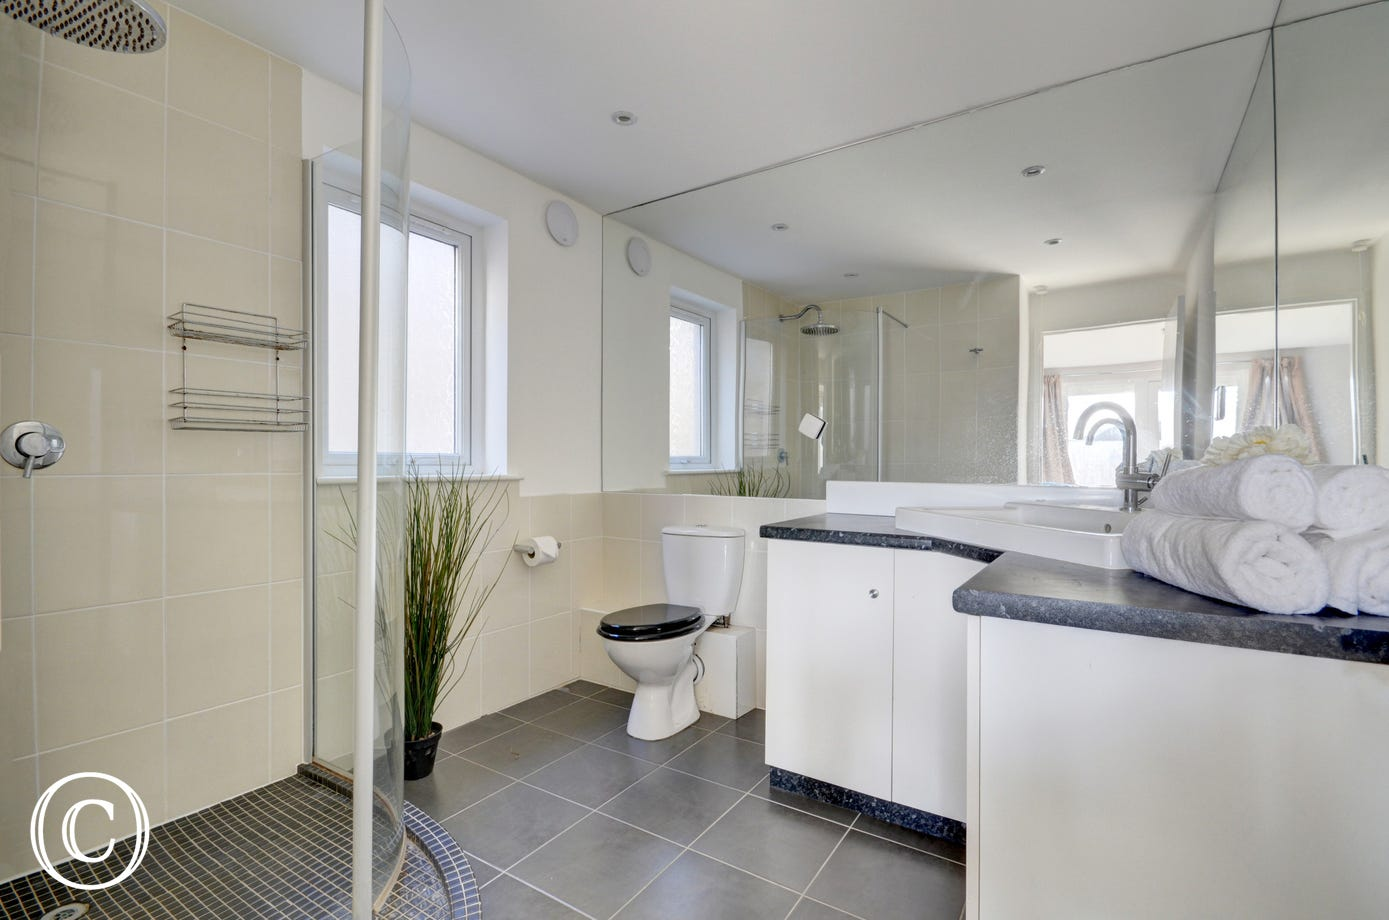 Spacious ensuite bathroom with walk-in shower